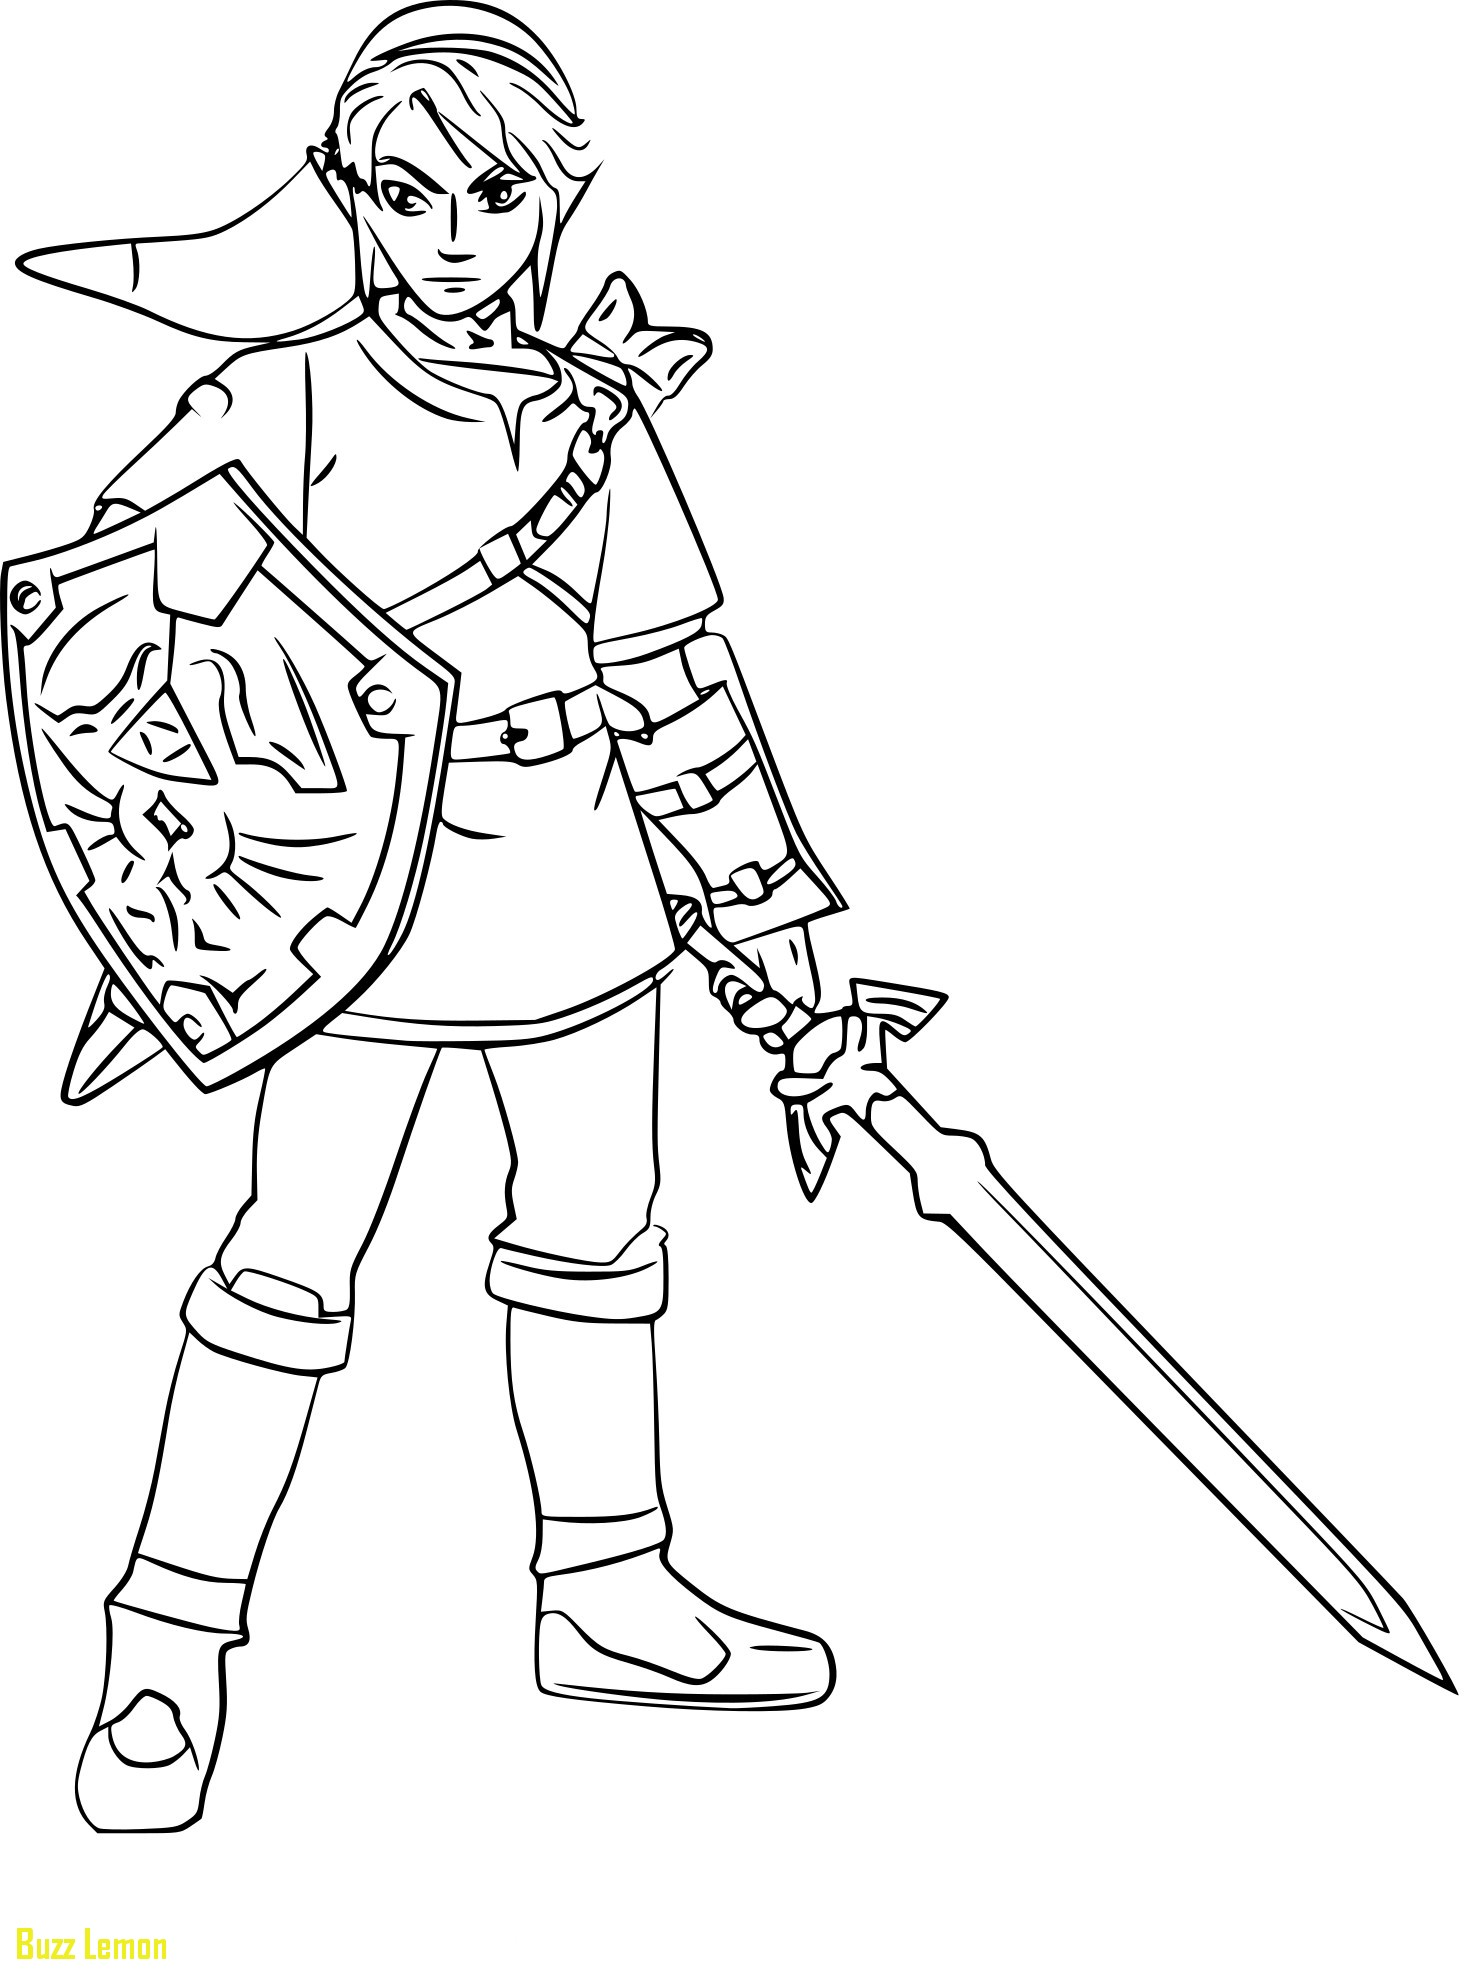 zelda coloring pages at getdrawings  free download